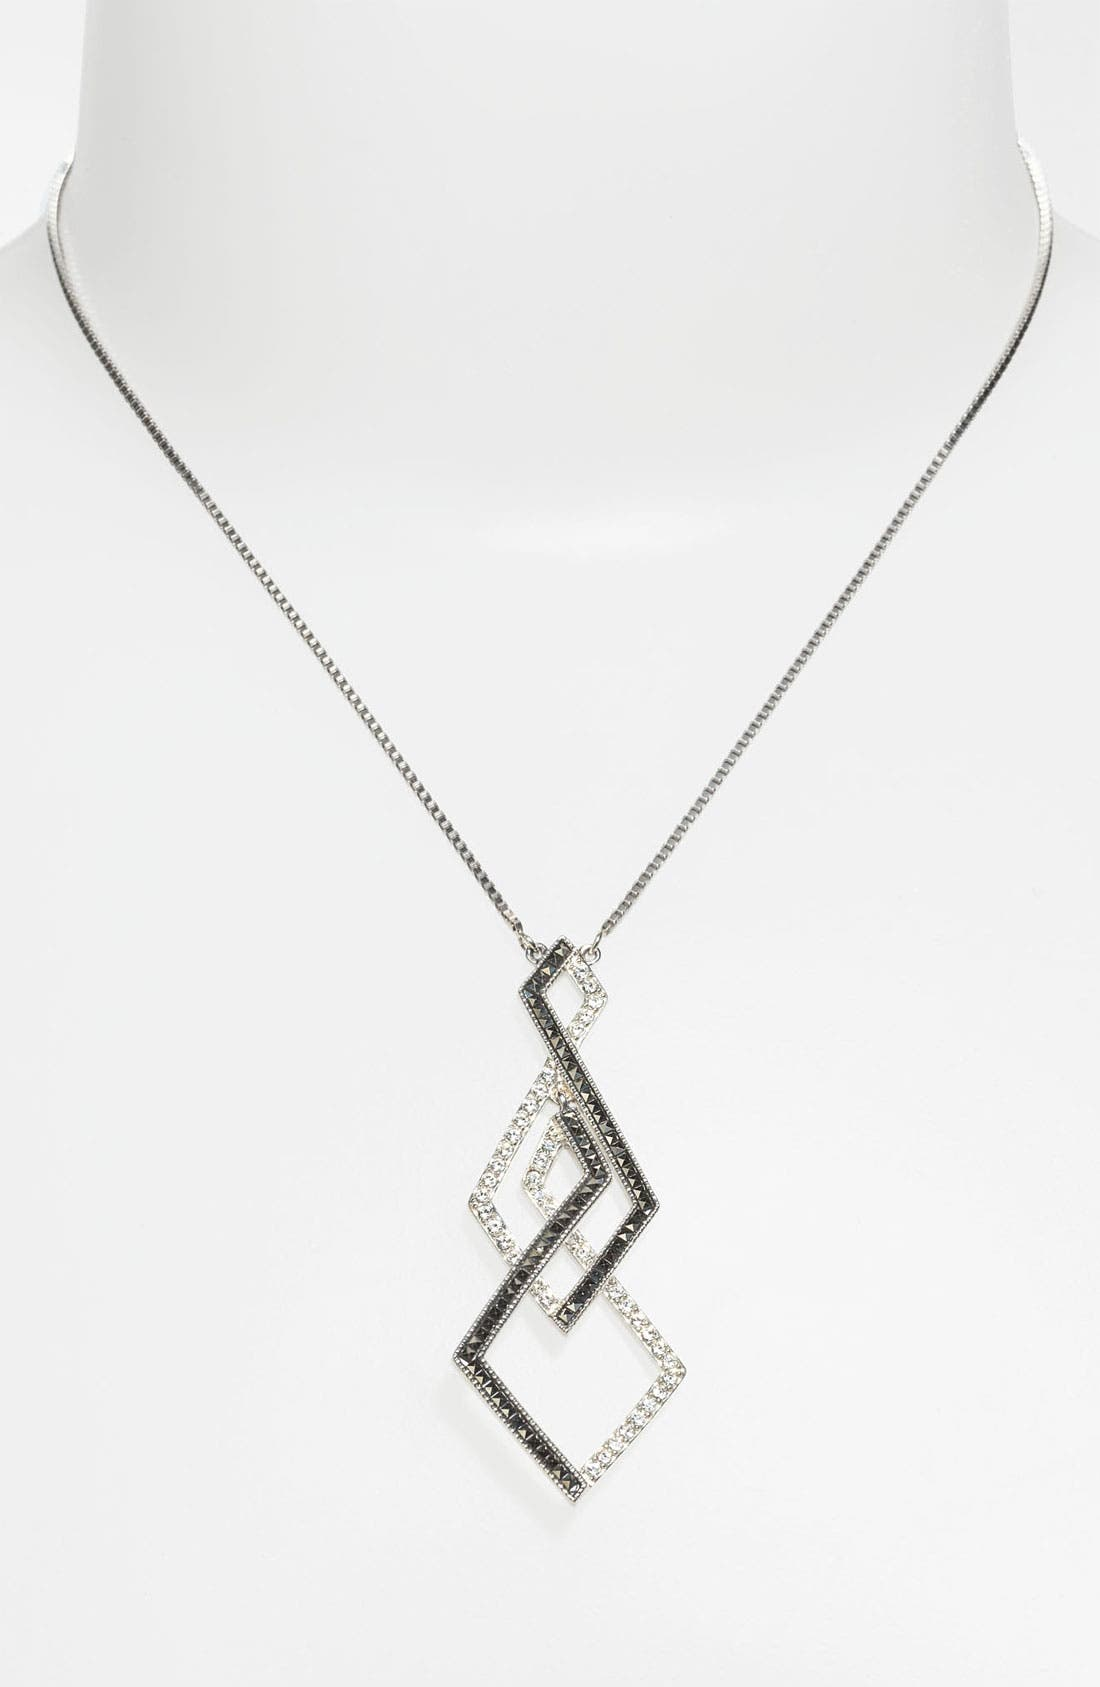 Main Image - Judith Jack 'Caged In' Pendant Necklace